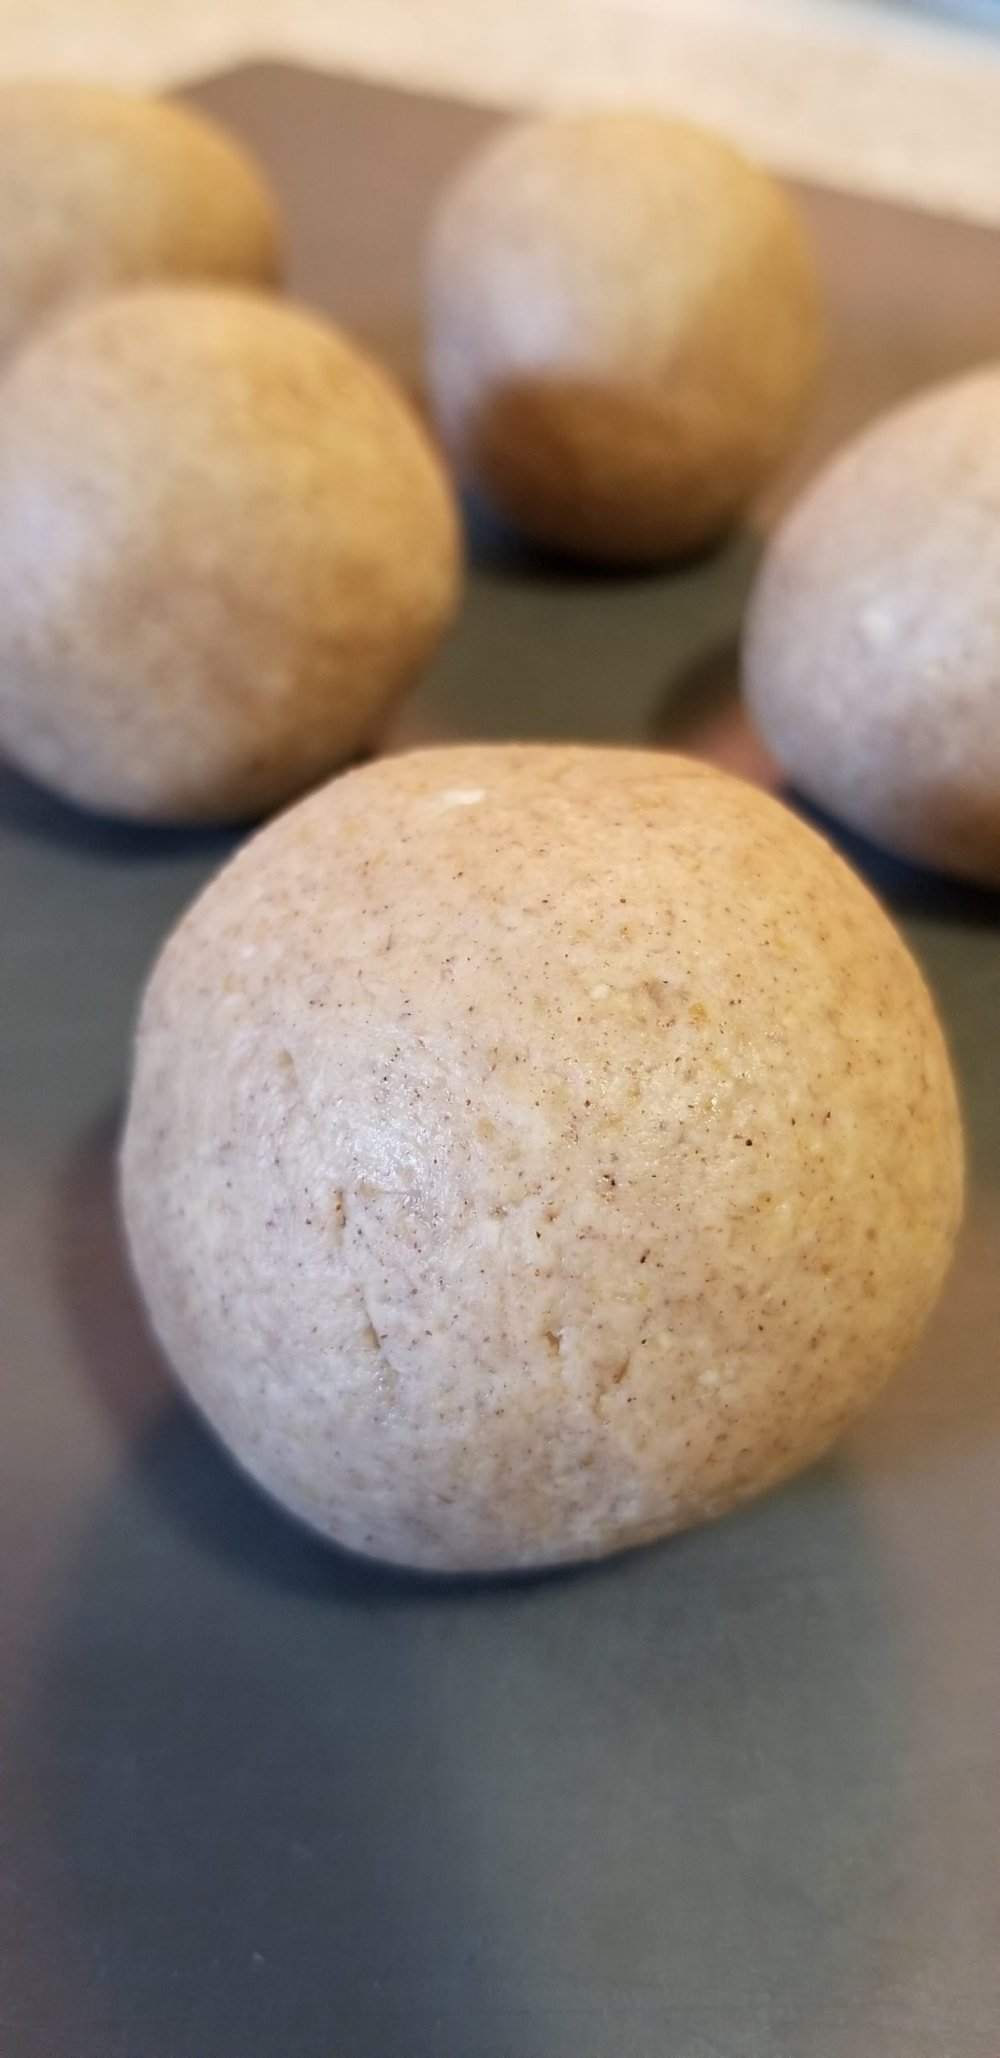 Oat flour dough rolled into balls